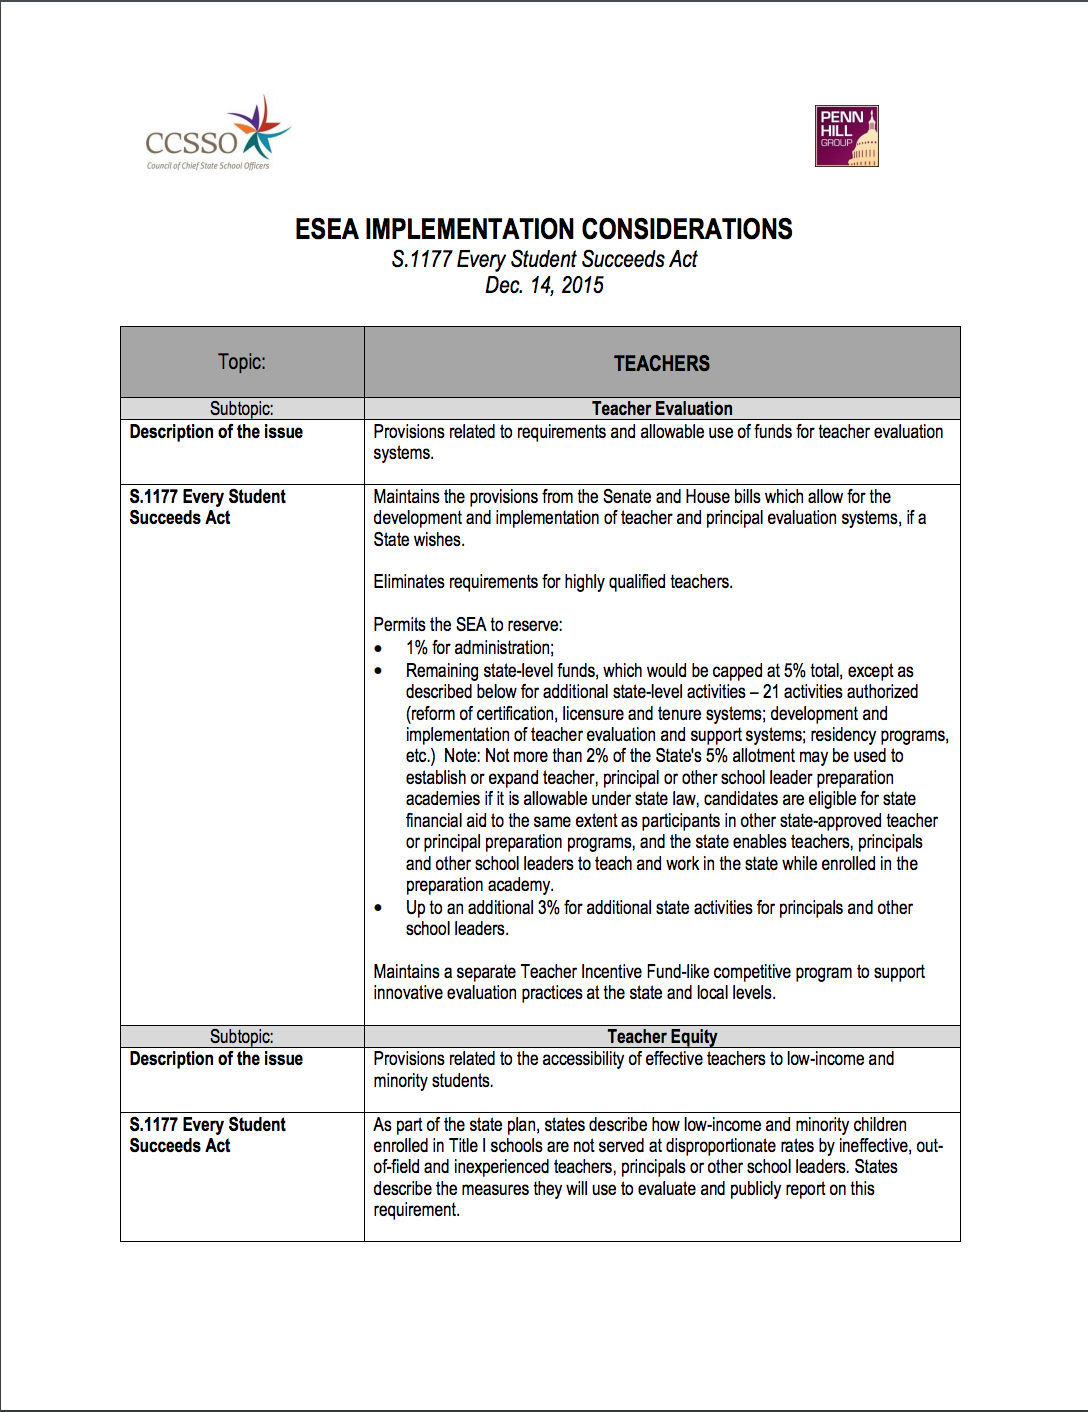 ESEA Implementation Considerations for Teachers page 1